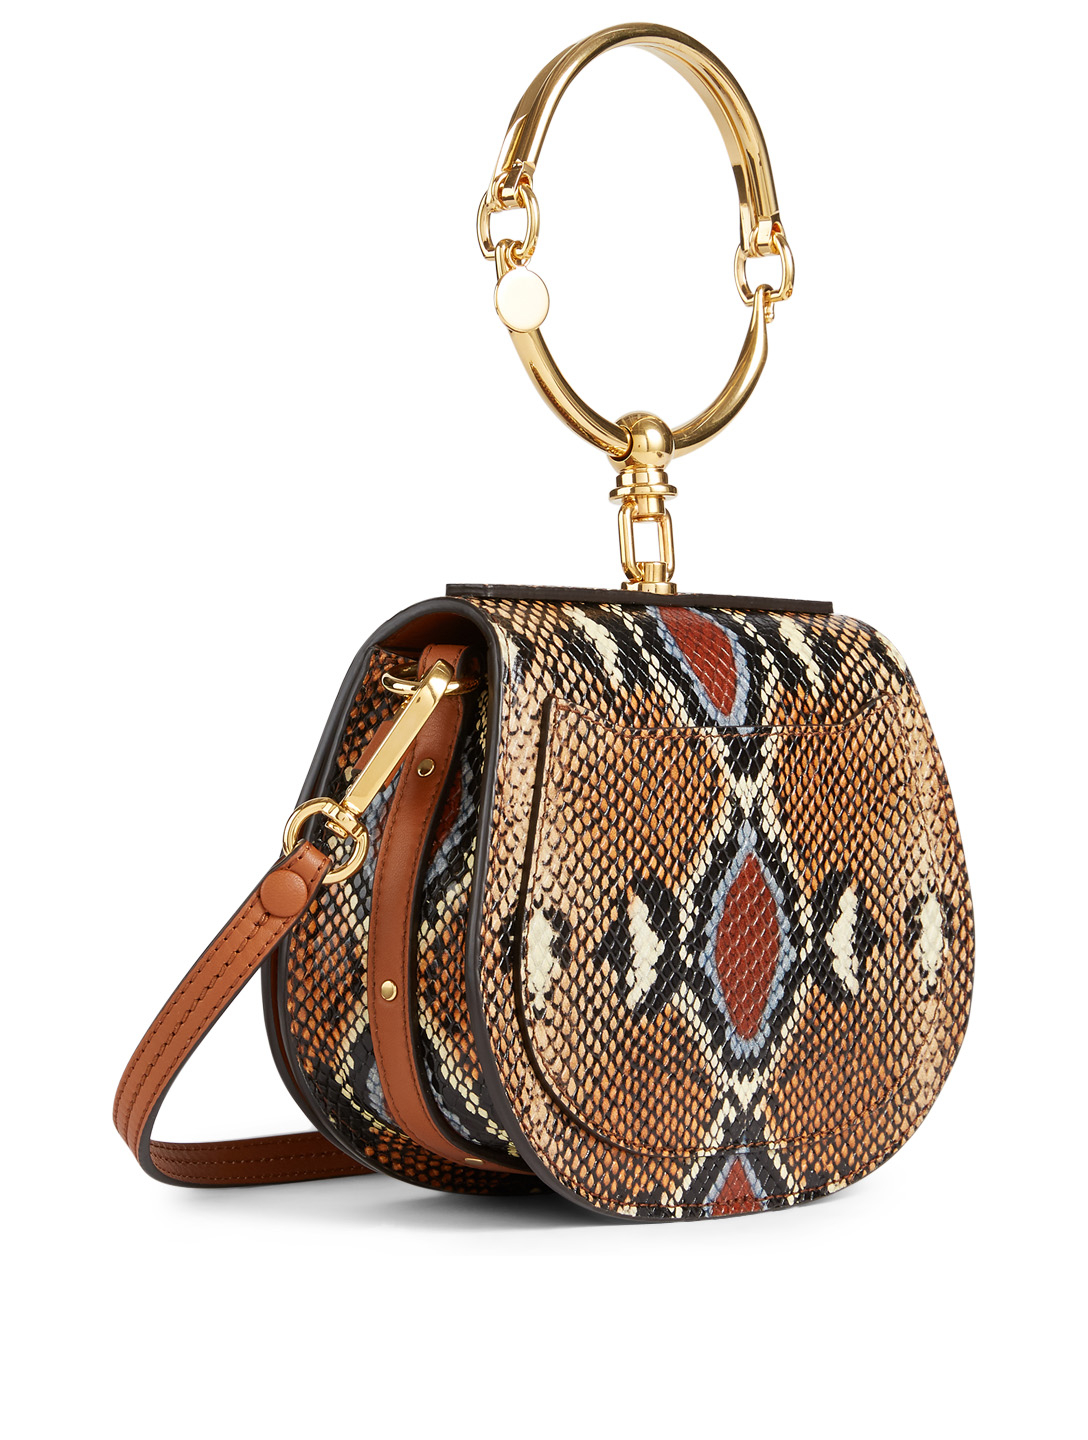 CHLOÉ Small Nile Leather Bag In Snake Print Women's Neutral